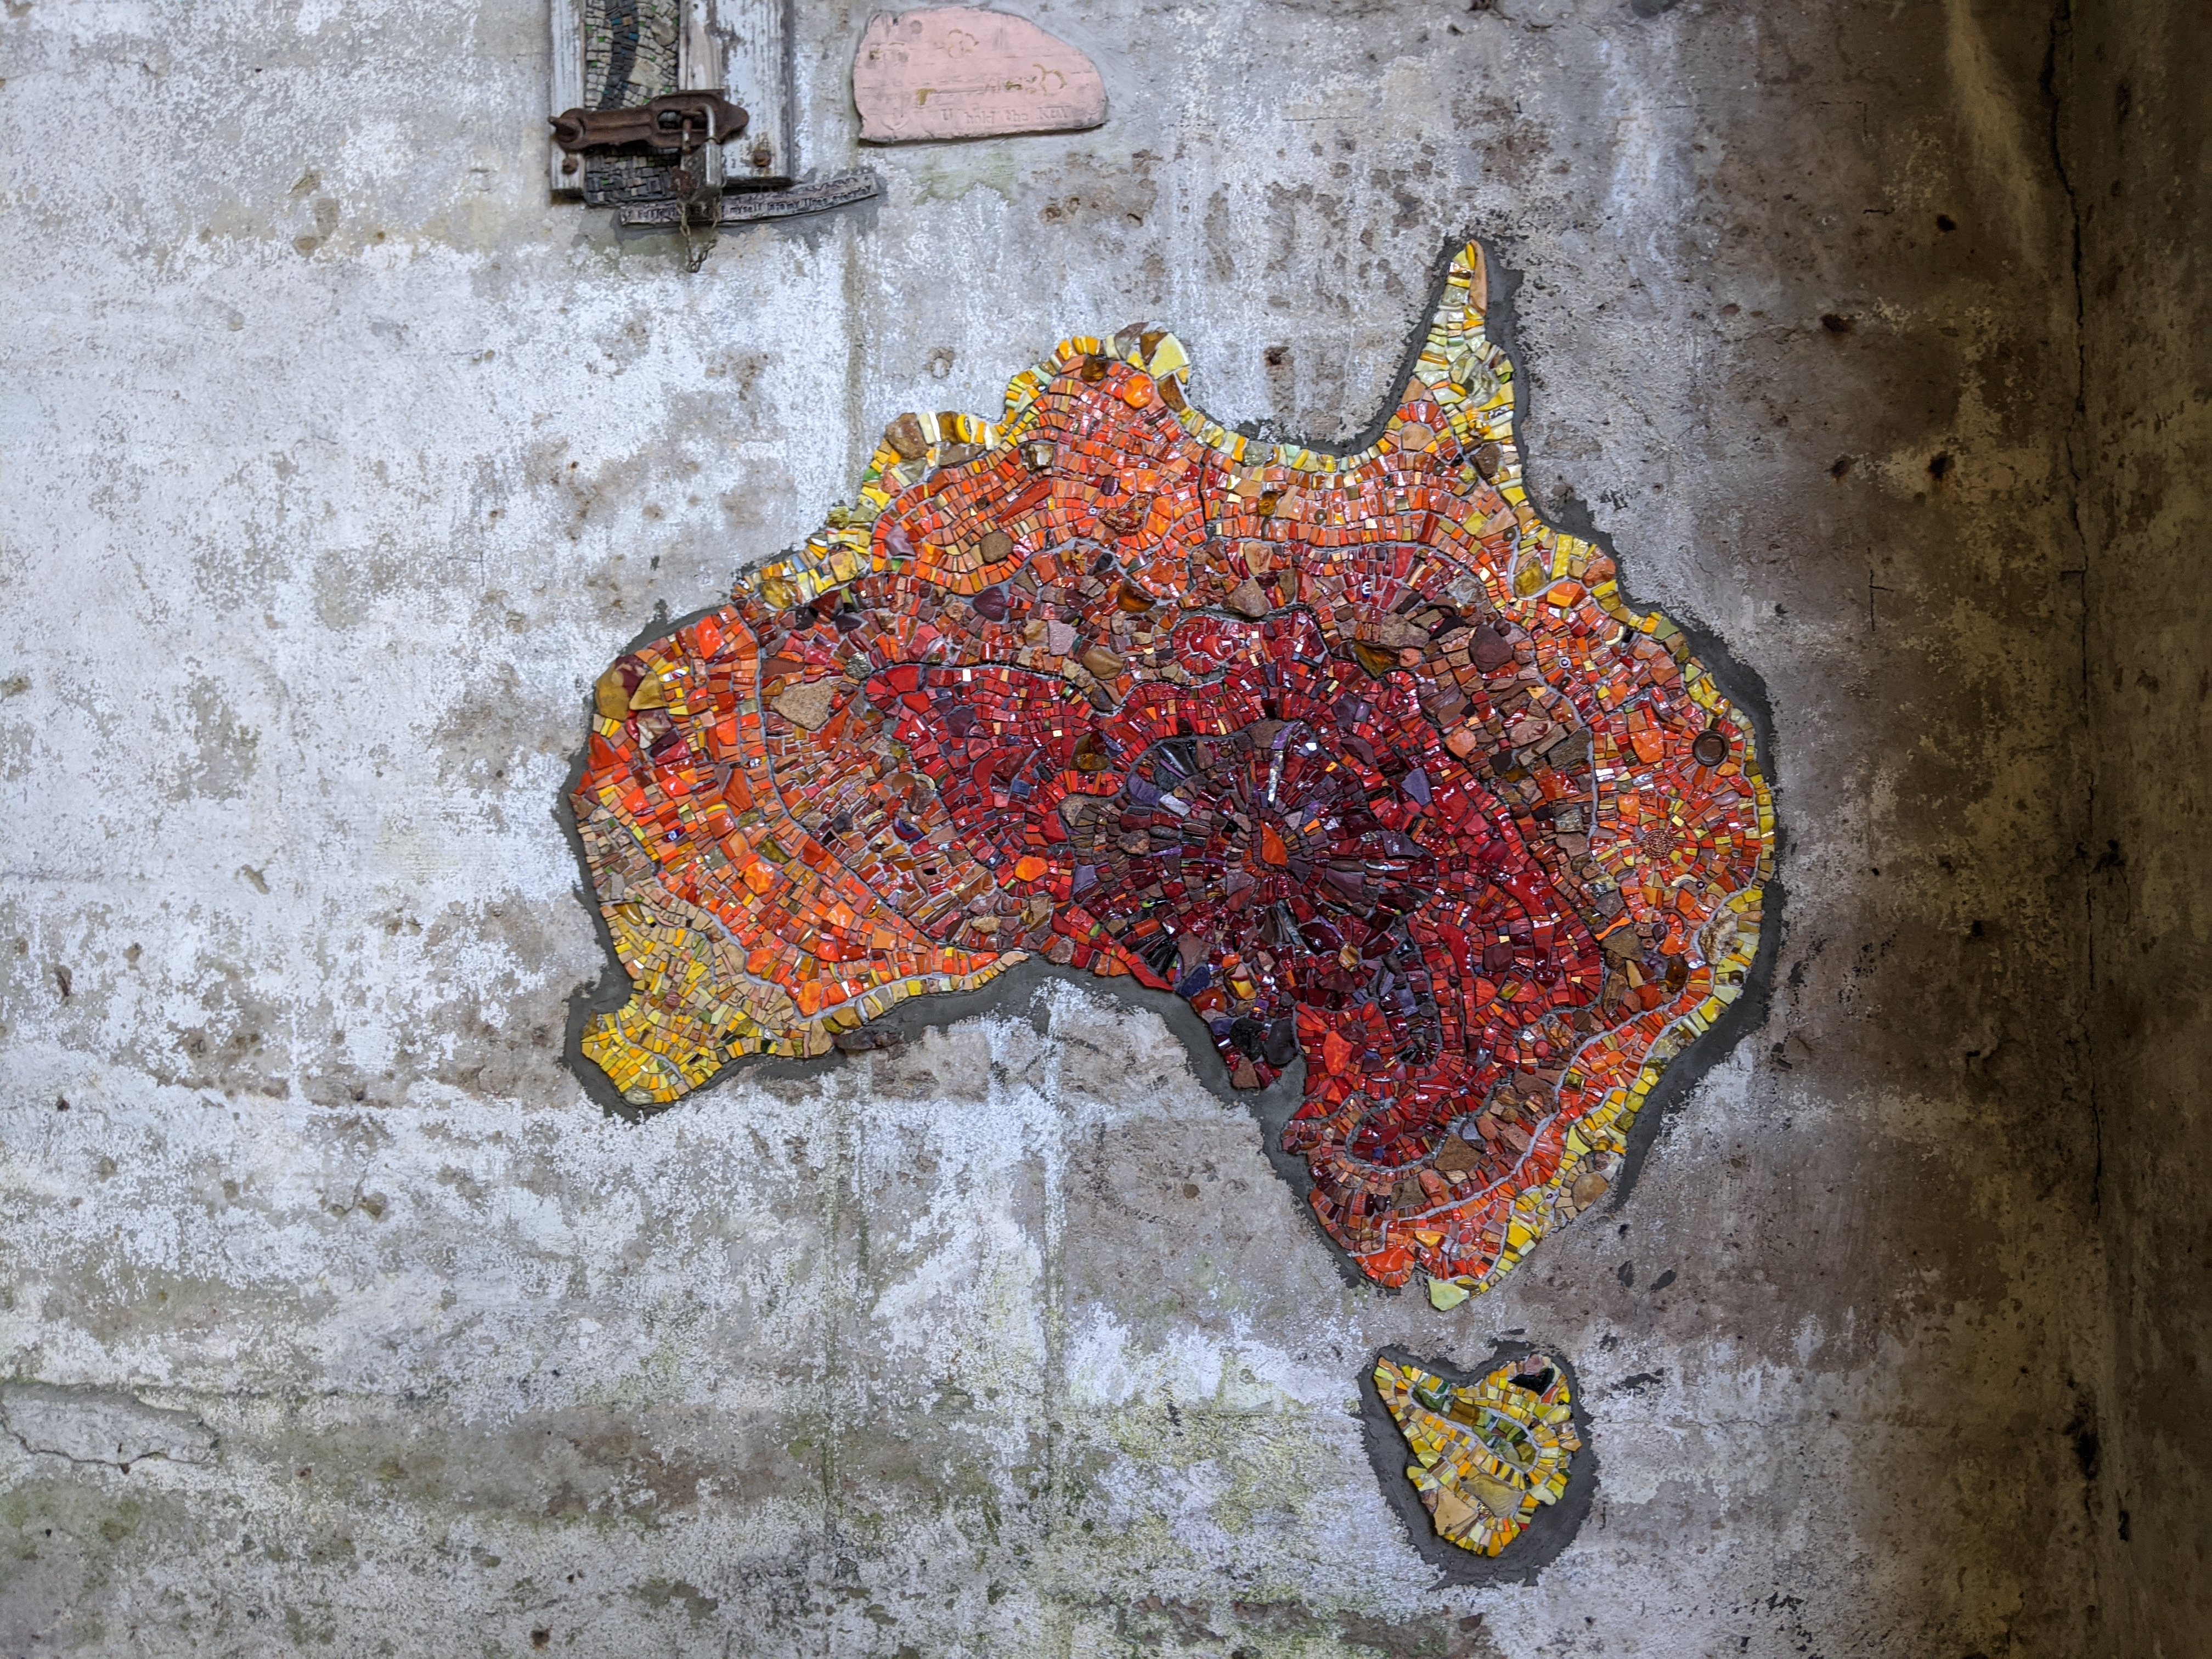 Representation of Australia (on fire) and Tasmania in the Map Room by Caitlin Hepworth and Marian Shapiro